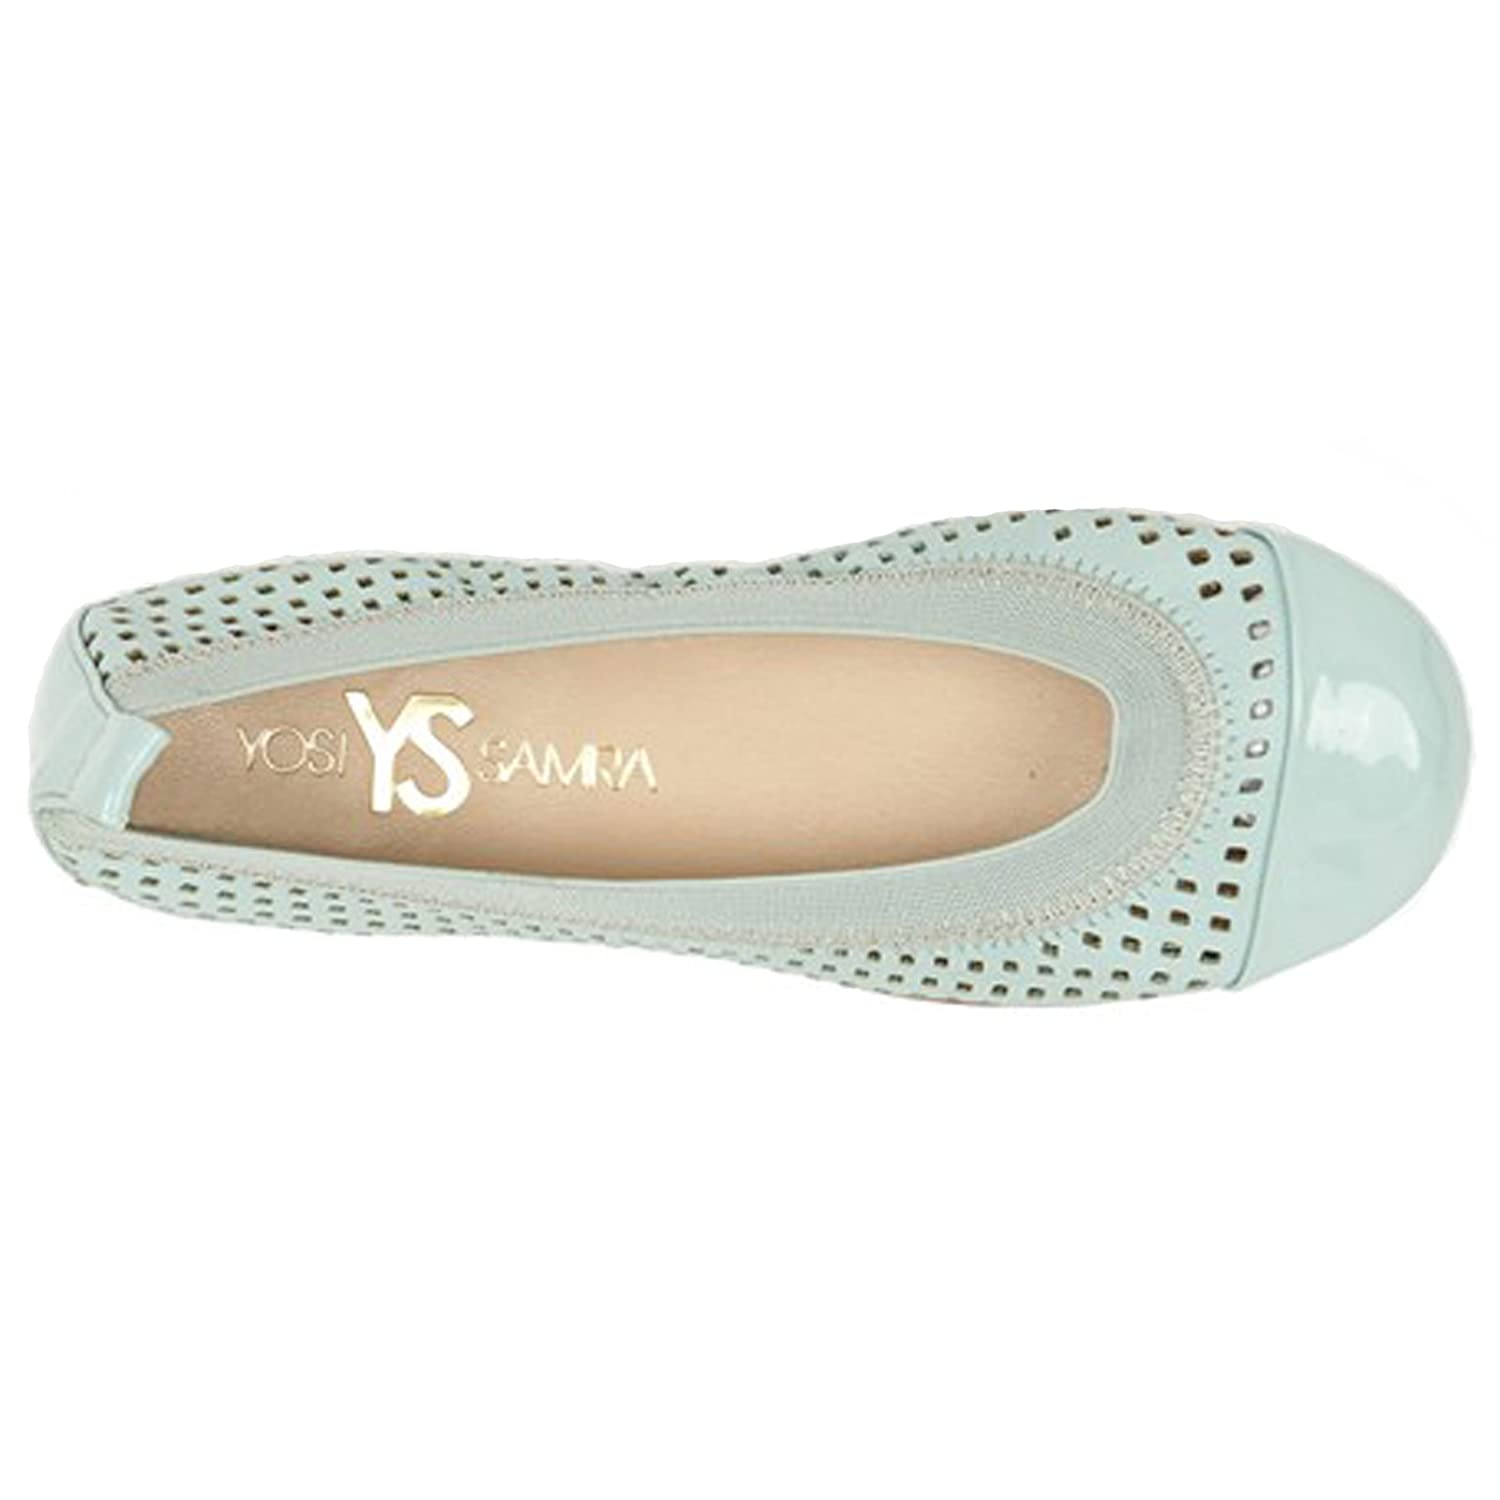 Yosi Samra Toddler//Little Kid//Big Kid Scarlett Alsina Leather Ballet Flat Shoes